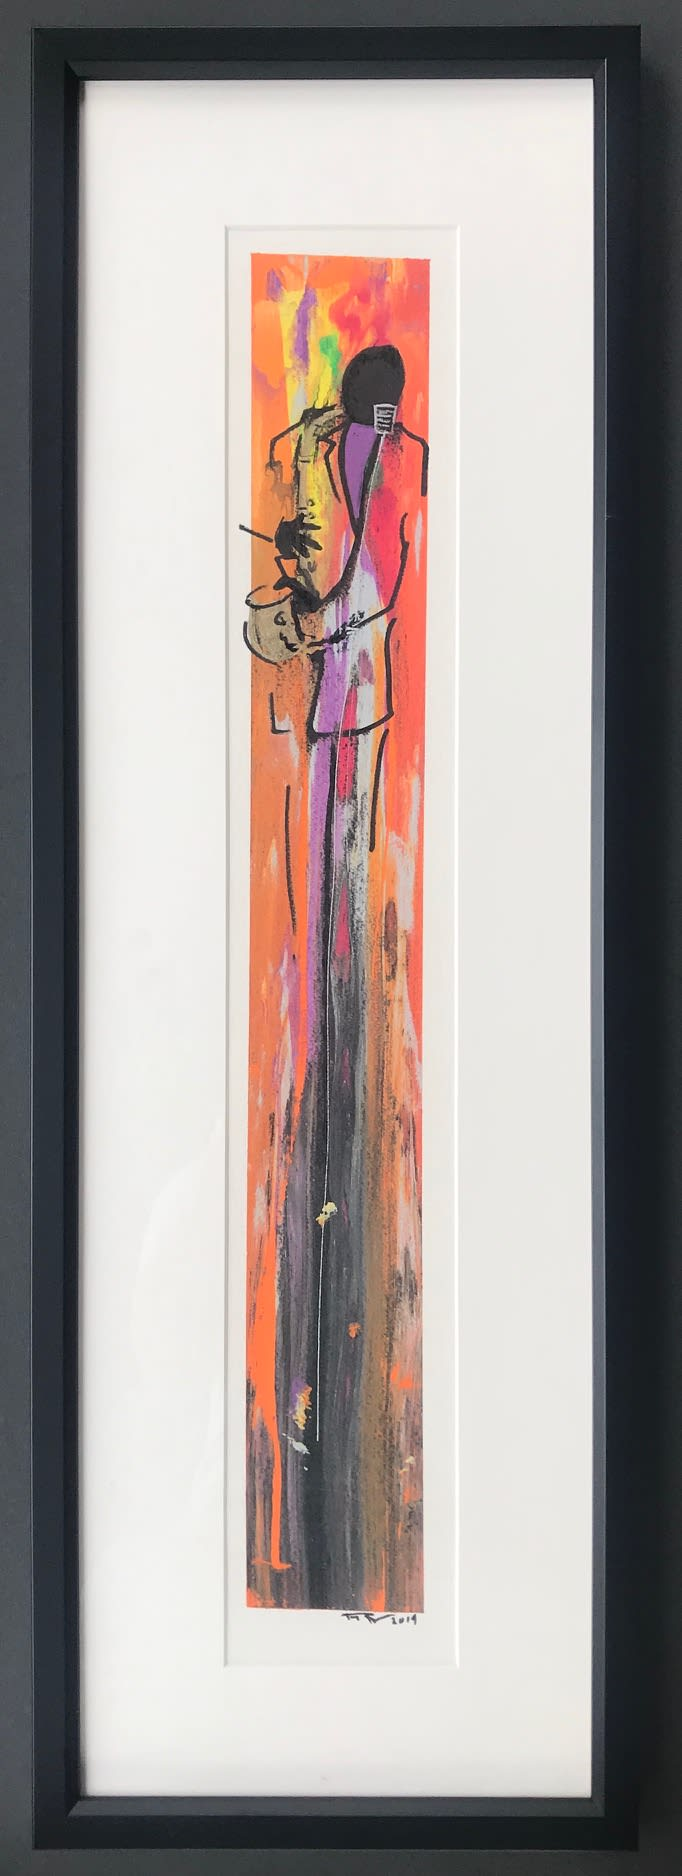 Frank Frazier Jazz Time, 2019 Mixed Media 11 3/4 x 36 3/4